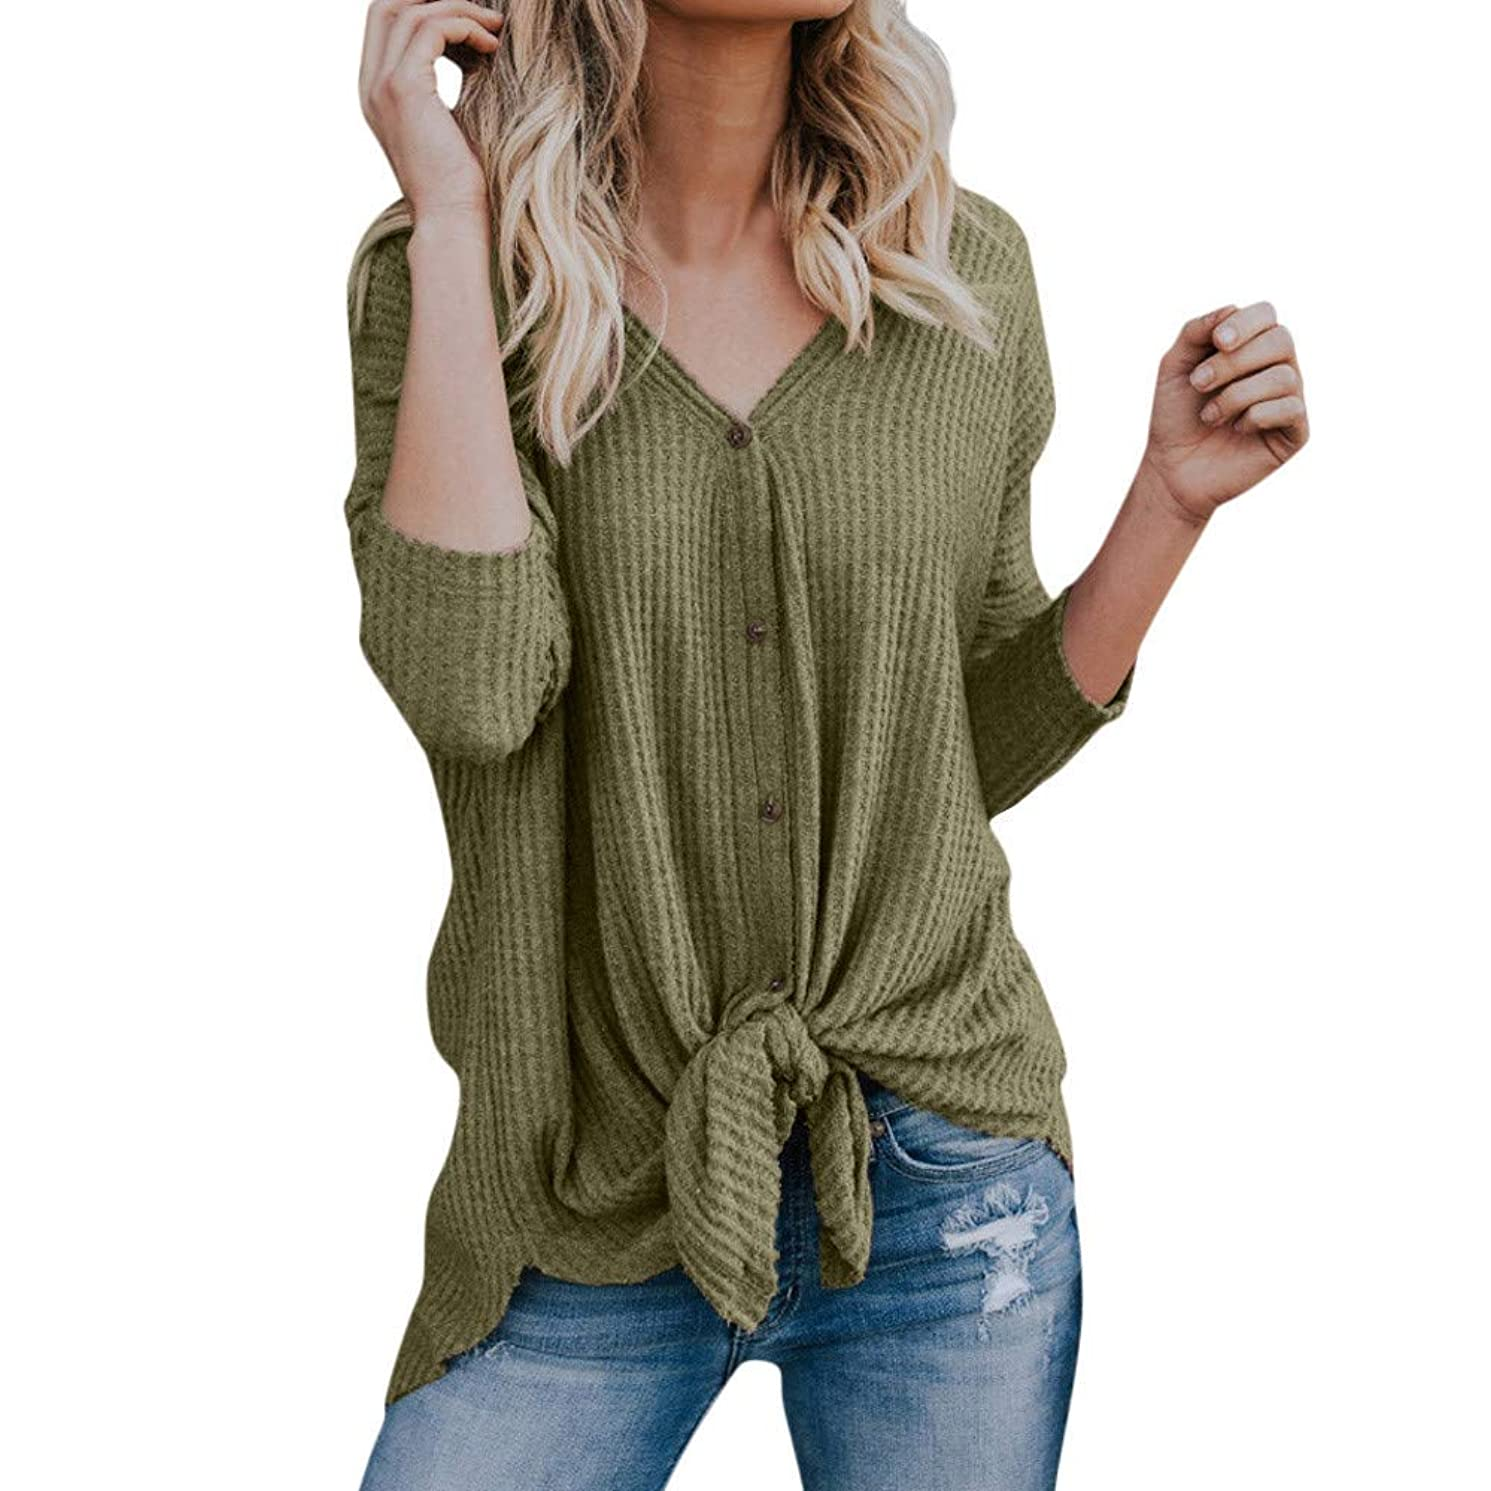 vermers Womens Waffle Knit Tunic Blouse Tie Knot Henley Tops Loose V-Neck Button Fitting Batwing Plain Shirts